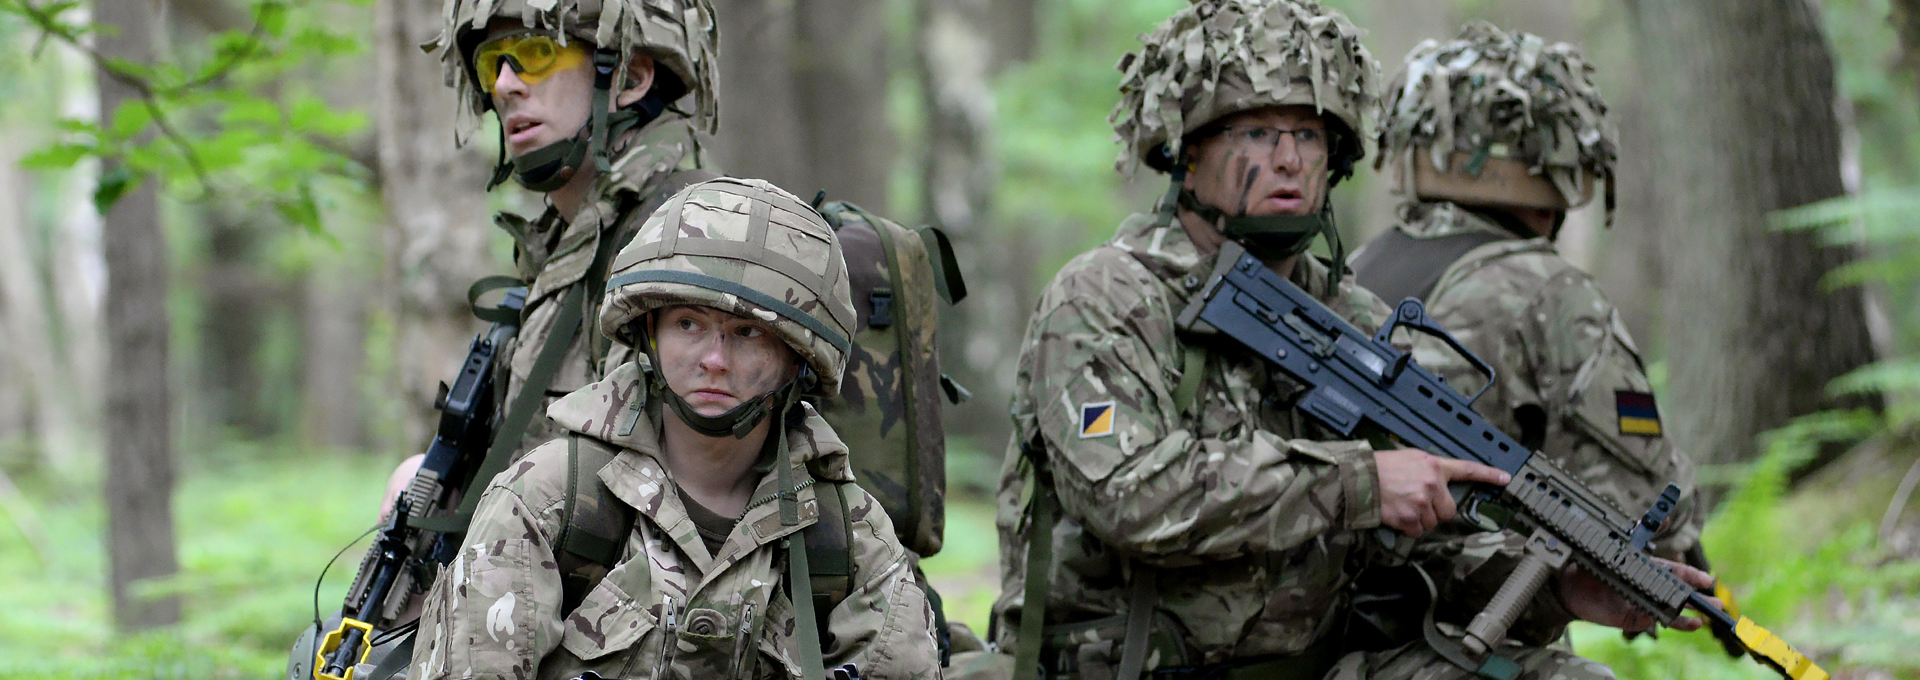 South East Rfca Gt Reserves Gt Army Reserve Gt Army Medical